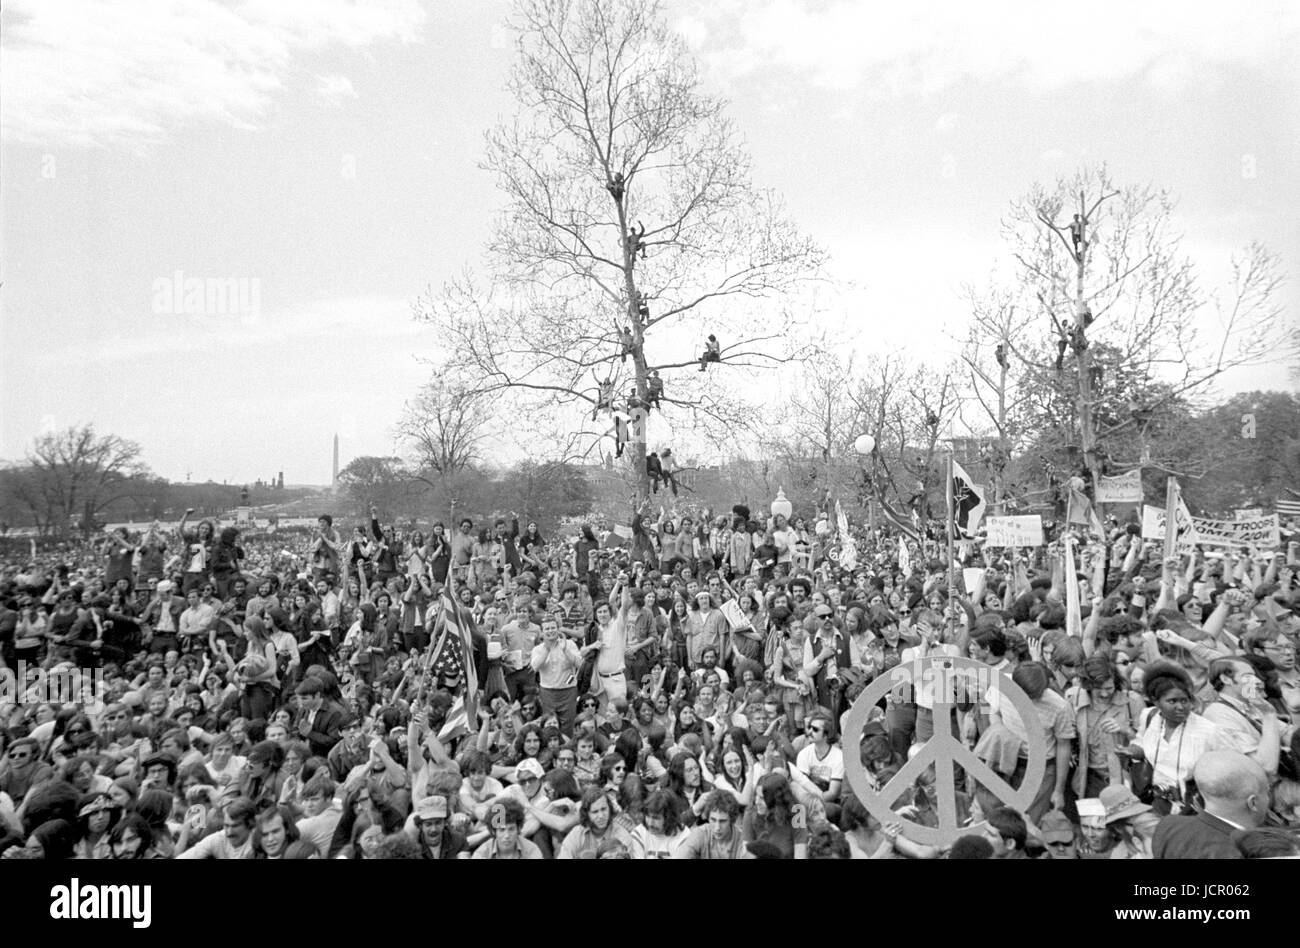 Antiwar protestors on the U.S. Capitol grounds and the Mall during massive demonstrations against the Vietnam war - Stock Image